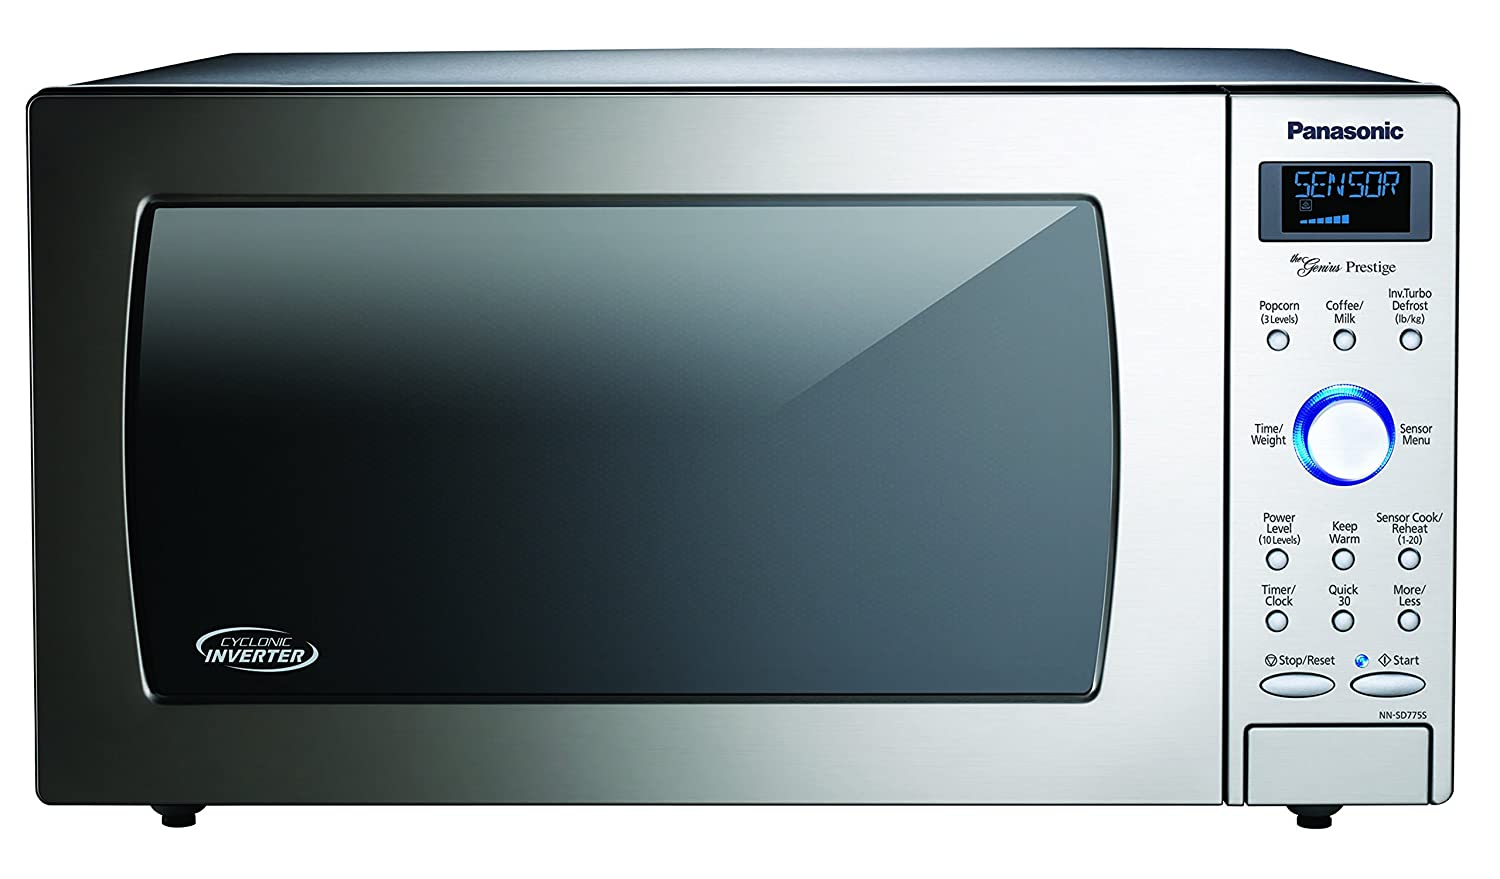 Panasonic NN-SD775 Microwave Oven 1.6 cu. ft. Stainless